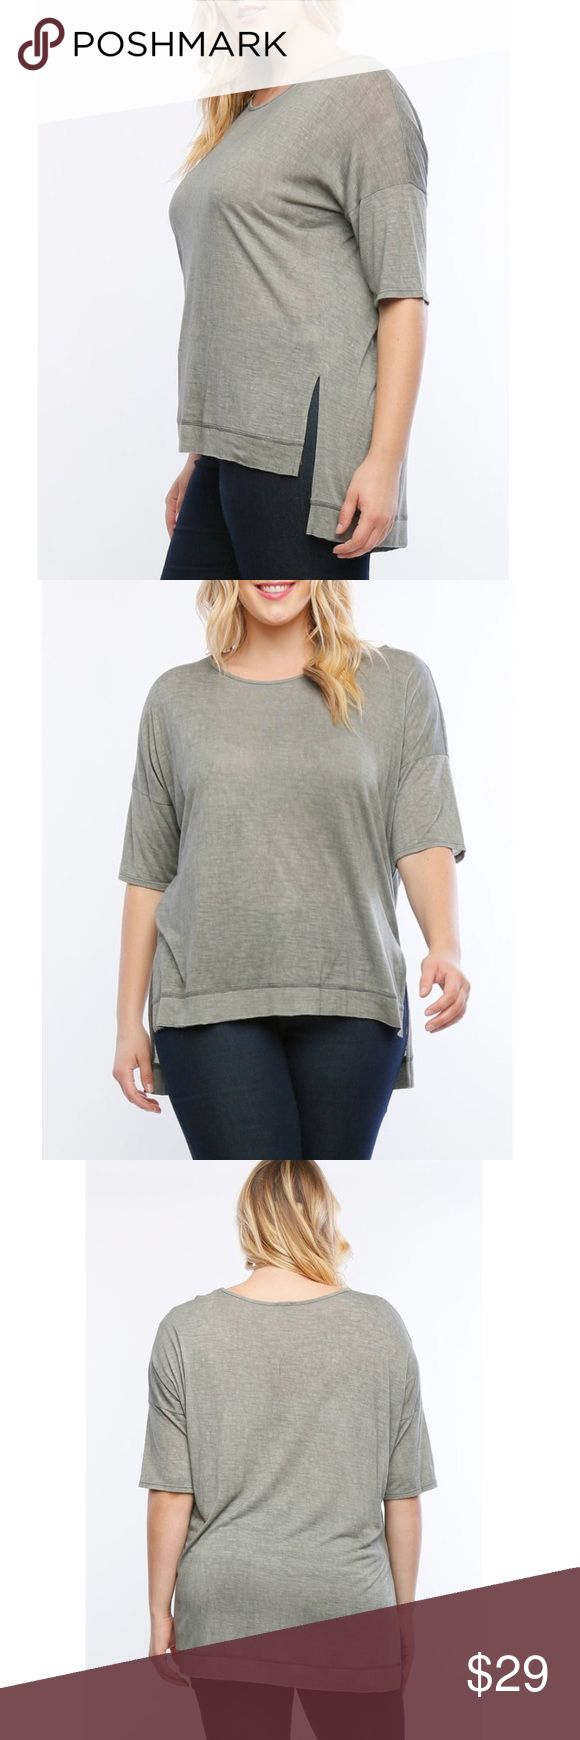 "Plus Size Mineral Wash Dolman Style Top Short sleeve dolman style mineral wash top with a slight high-low feature.  Stay comfortable, casual and cute by pairing this top with a great pair of skinny jeans and booties or wedges or dress it down with some shorts and sandals.   This top fits true to size, the model 5'10 and is shown in a 1XL. 100% Rayon 1XL Measures 26"" long from middle shoulder of wooden hanger to bottom, longer in the back, 2XL measures 27"" long in the front, 3XL measures 28""…"